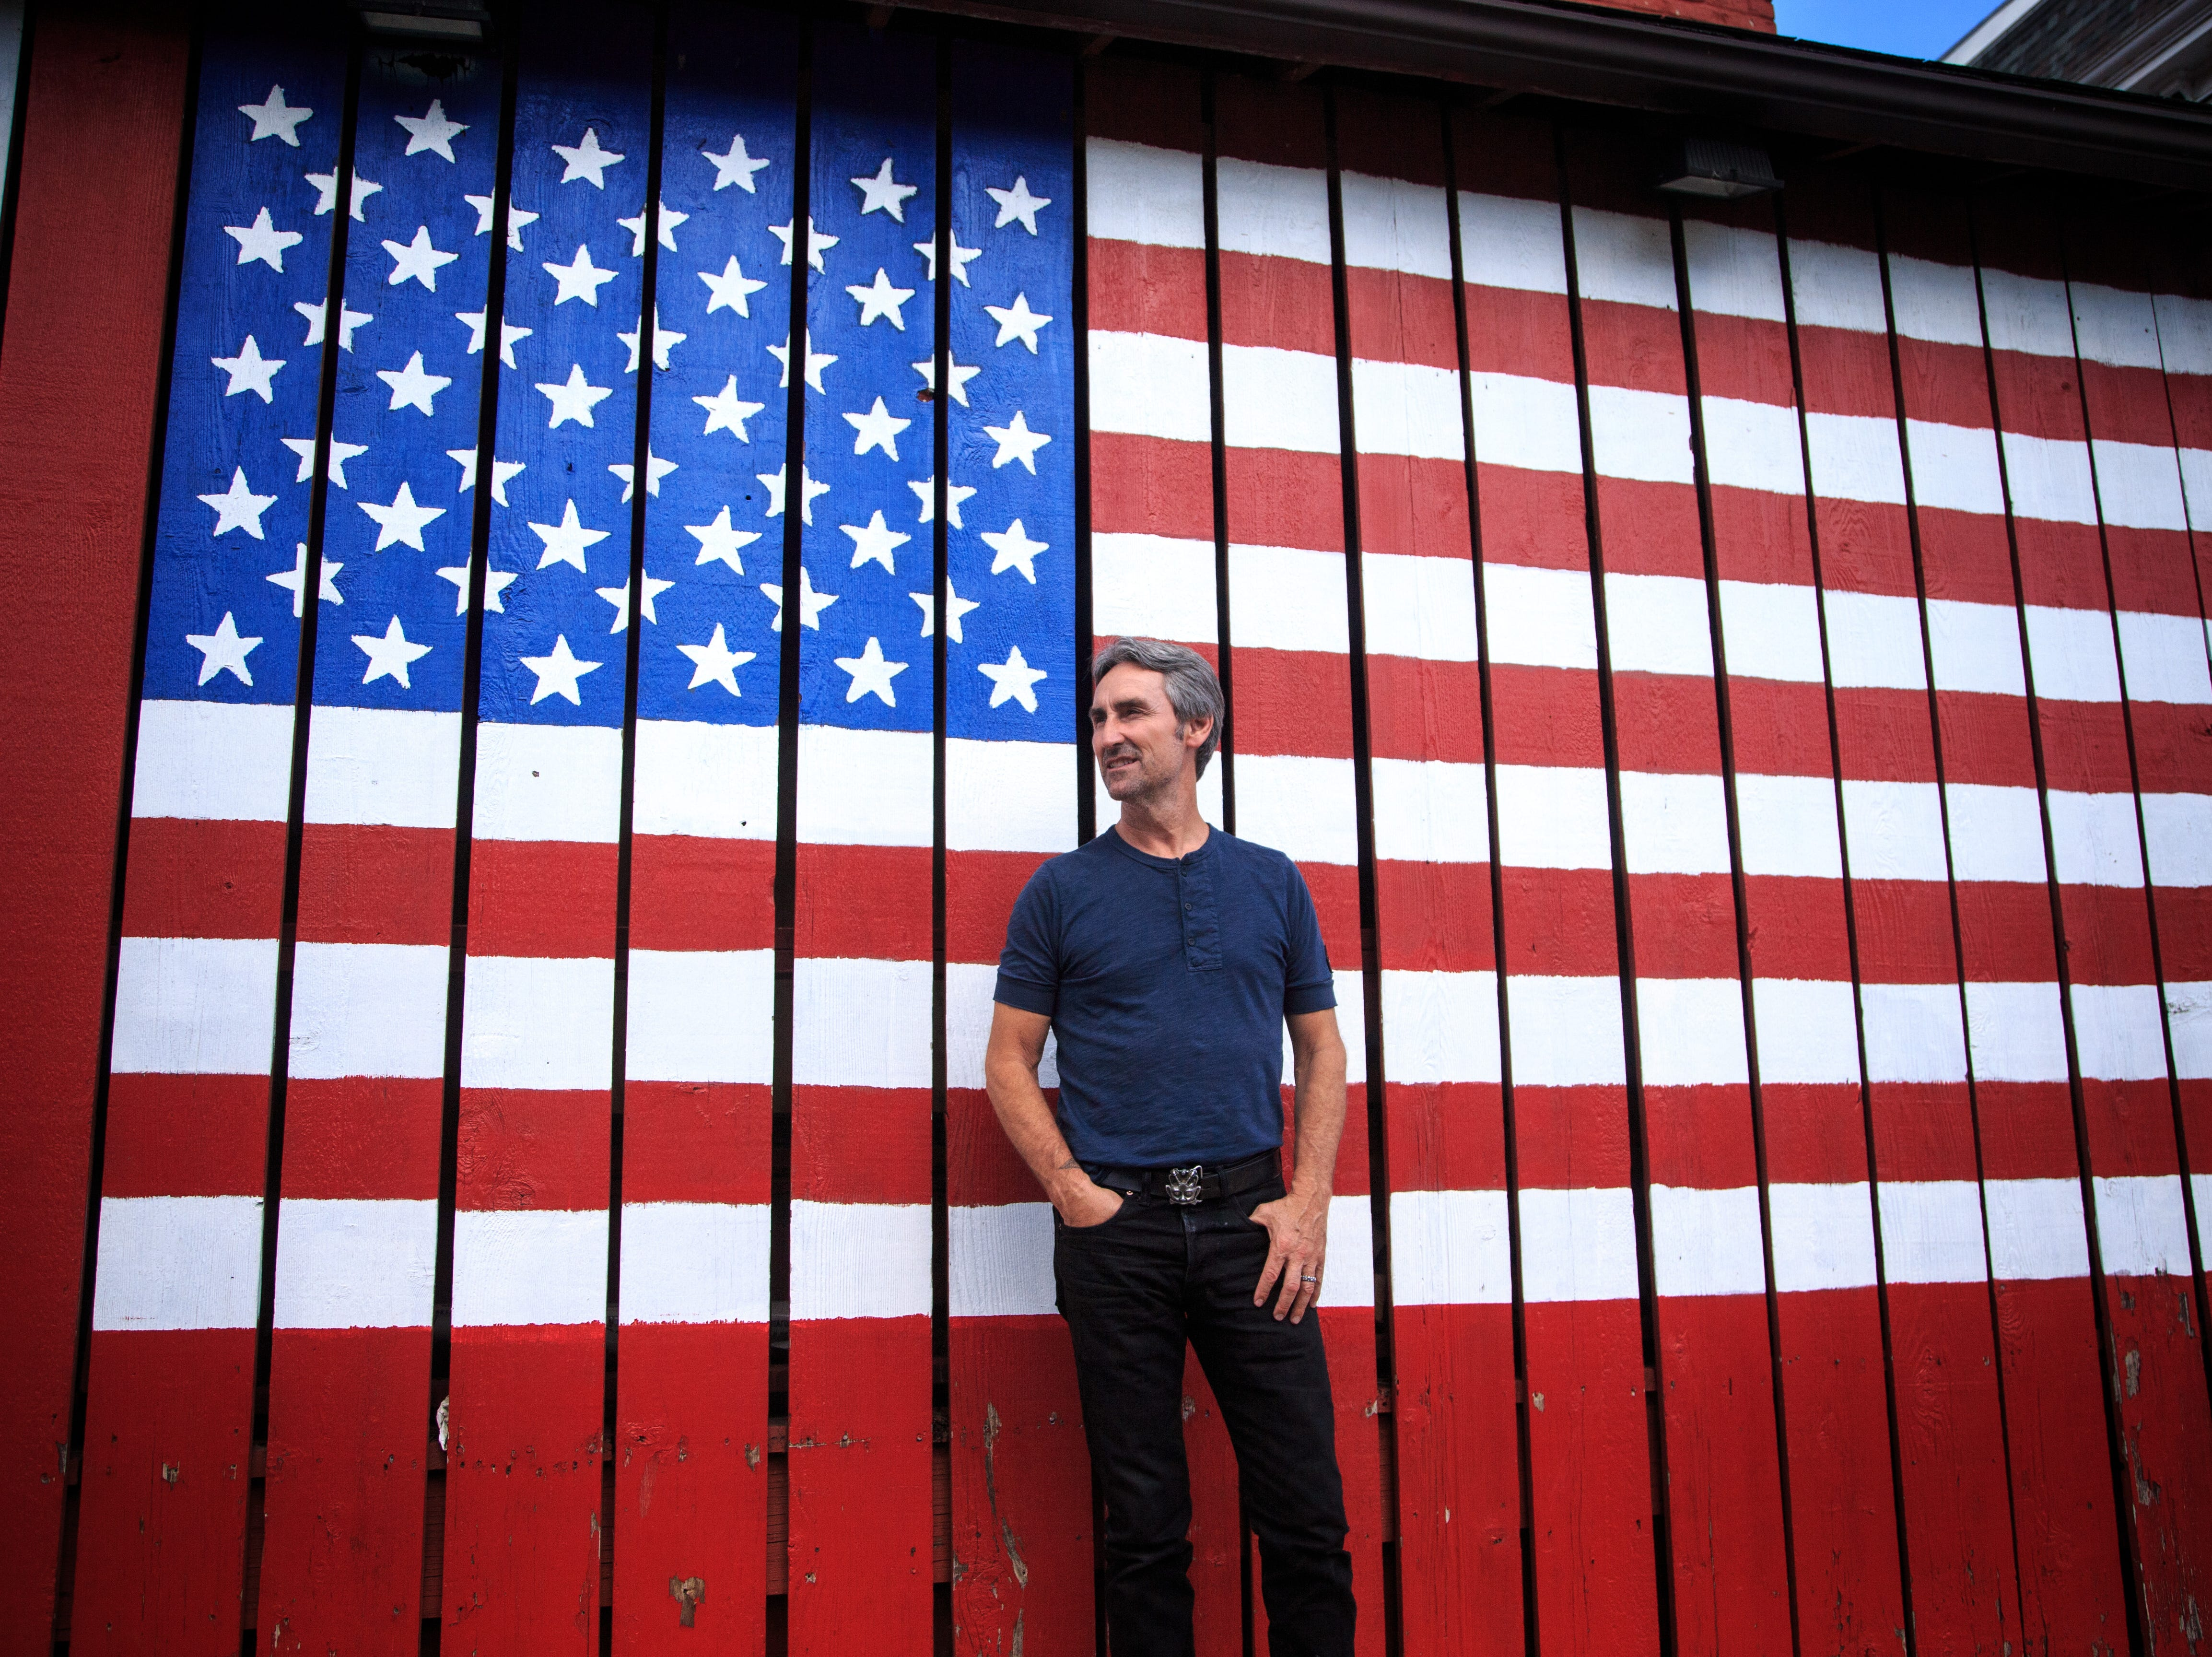 Mike Wolfe of American Pickers fame stands for a photo in LeClaire, where his store Antique Archaeology is located June 27, 2018.